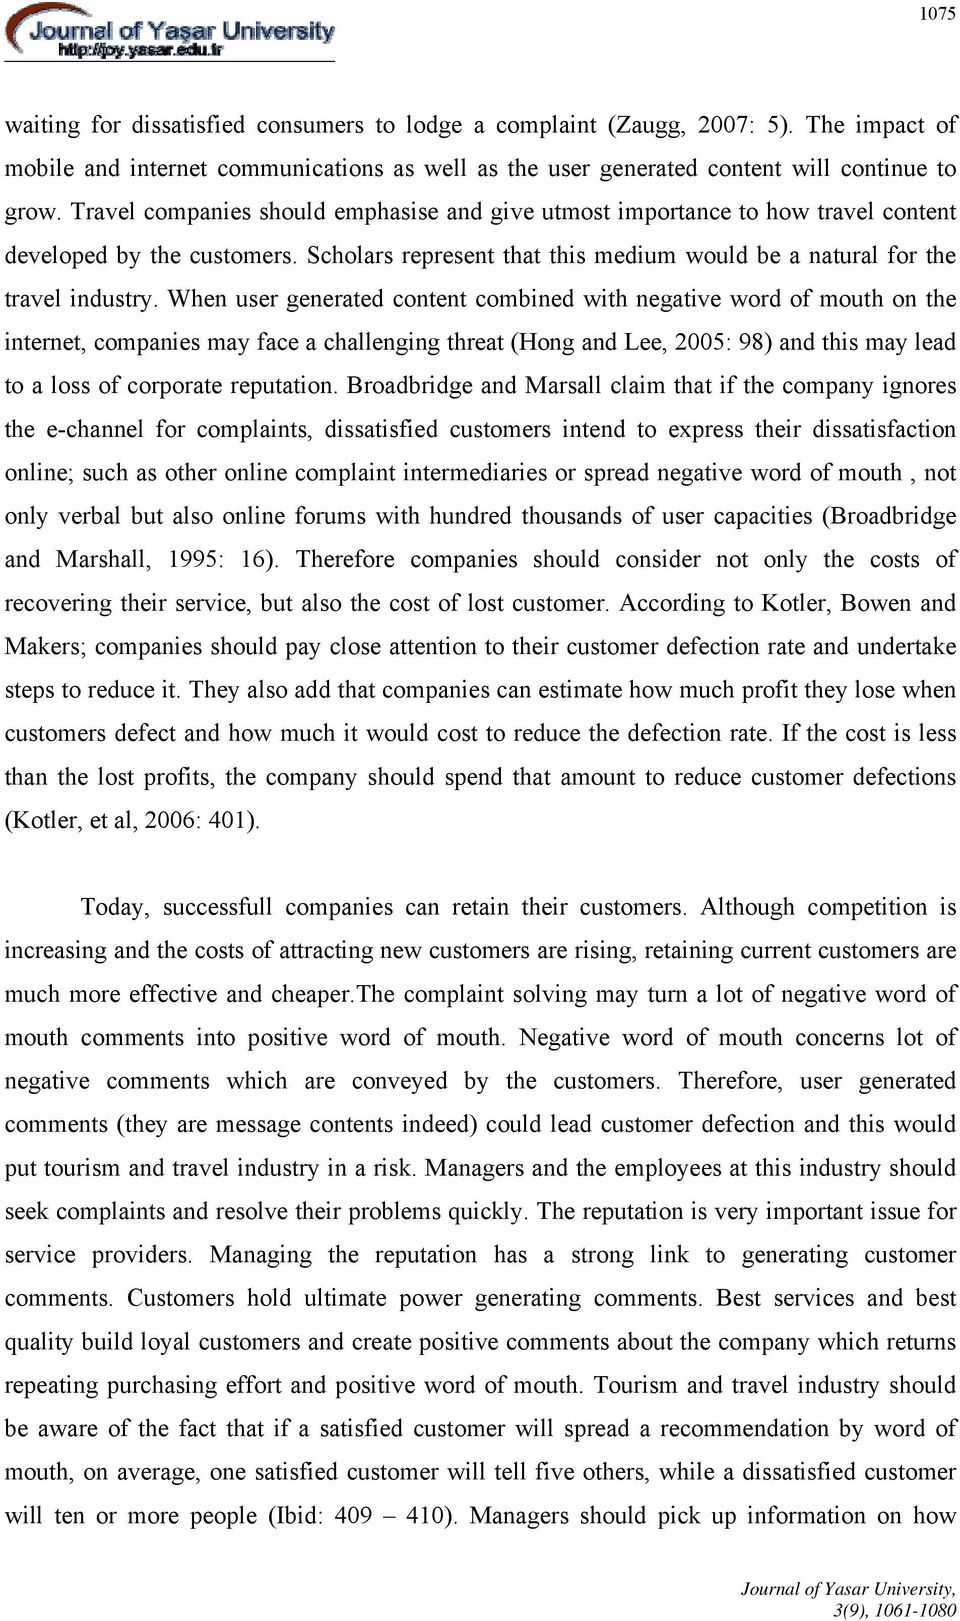 When user generated content combined with negative word of mouth on the internet, companies may face a challenging threat (Hong and Lee, 2005: 98) and this may lead to a loss of corporate reputation.